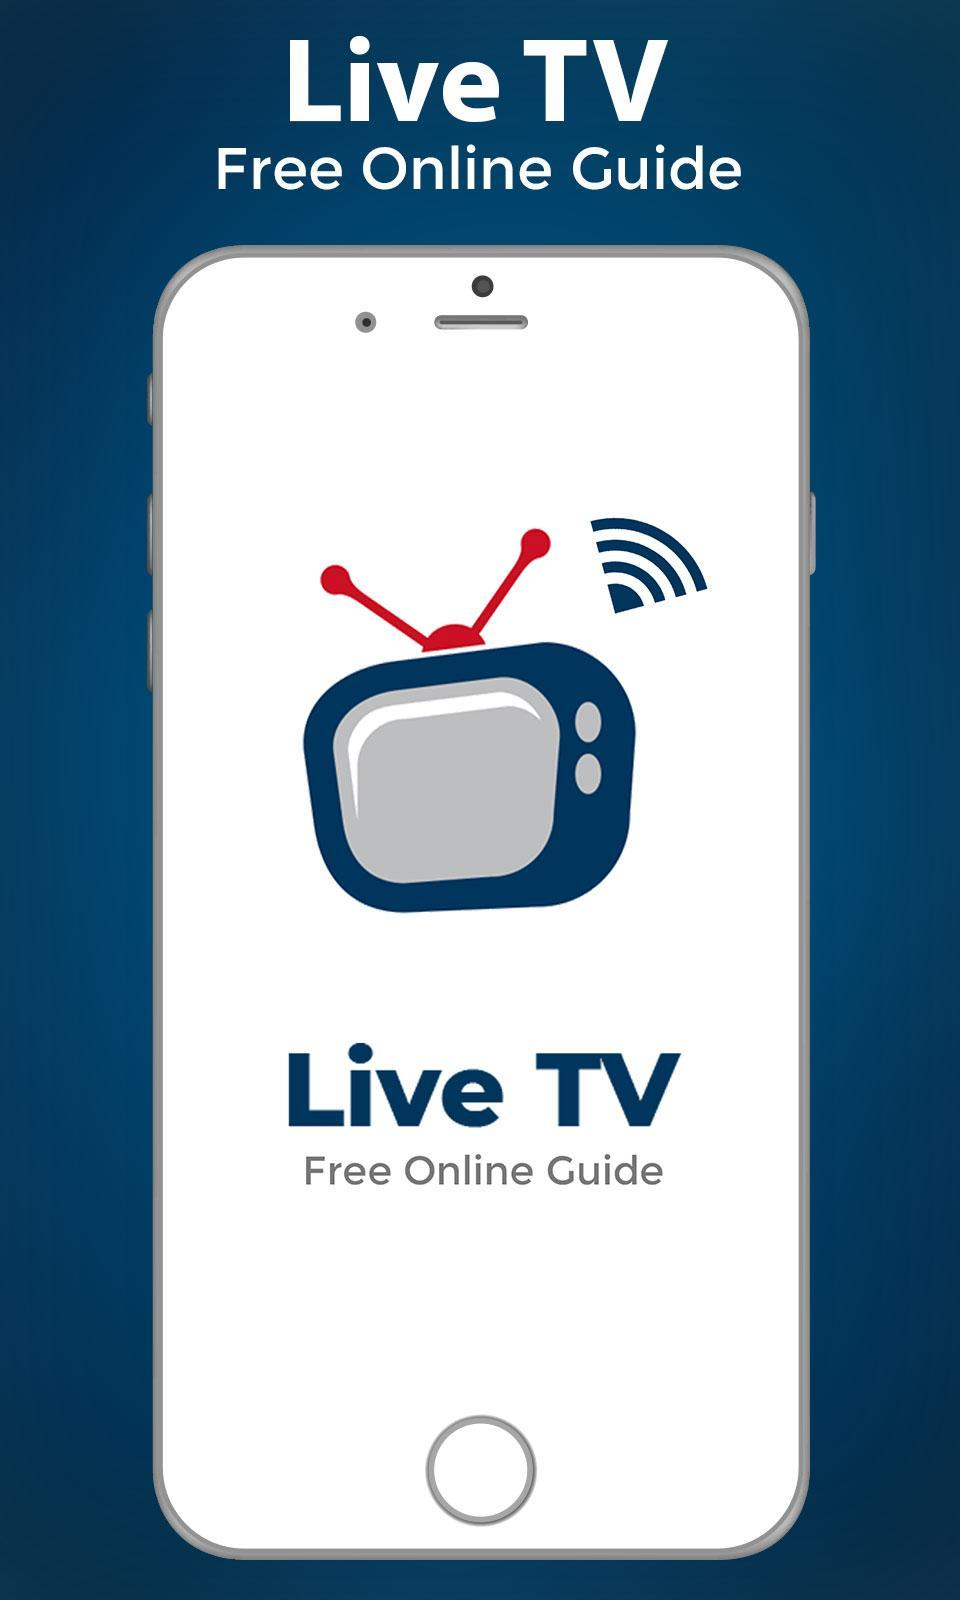 Live TV All Channels Free Online Guide for Android - APK Download